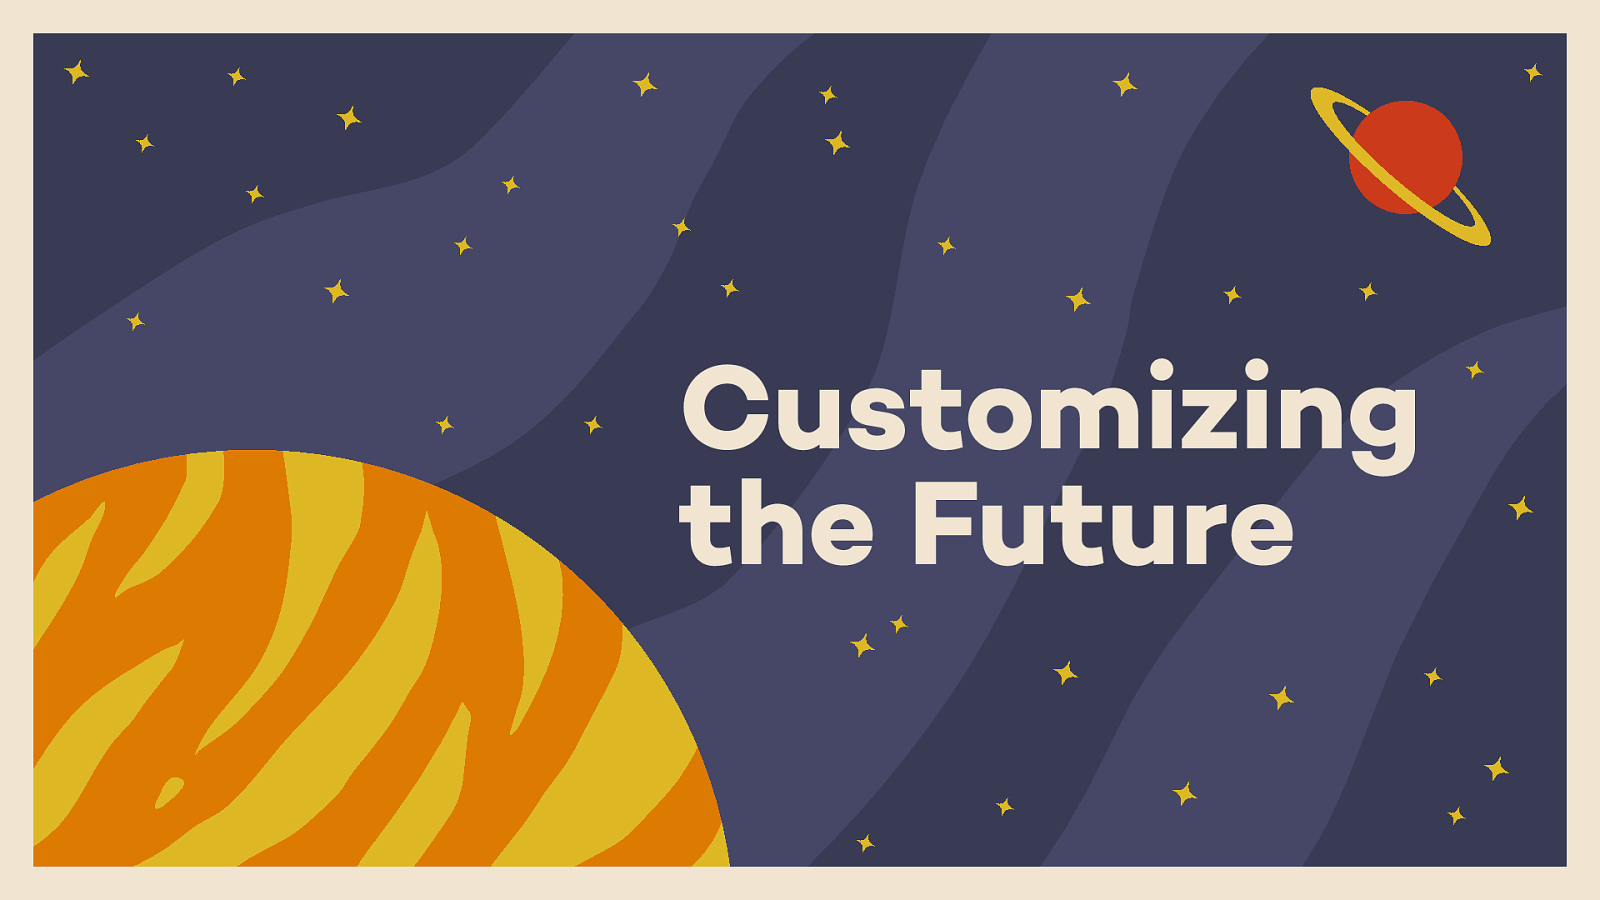 Customizing the Future by Mel Choyce